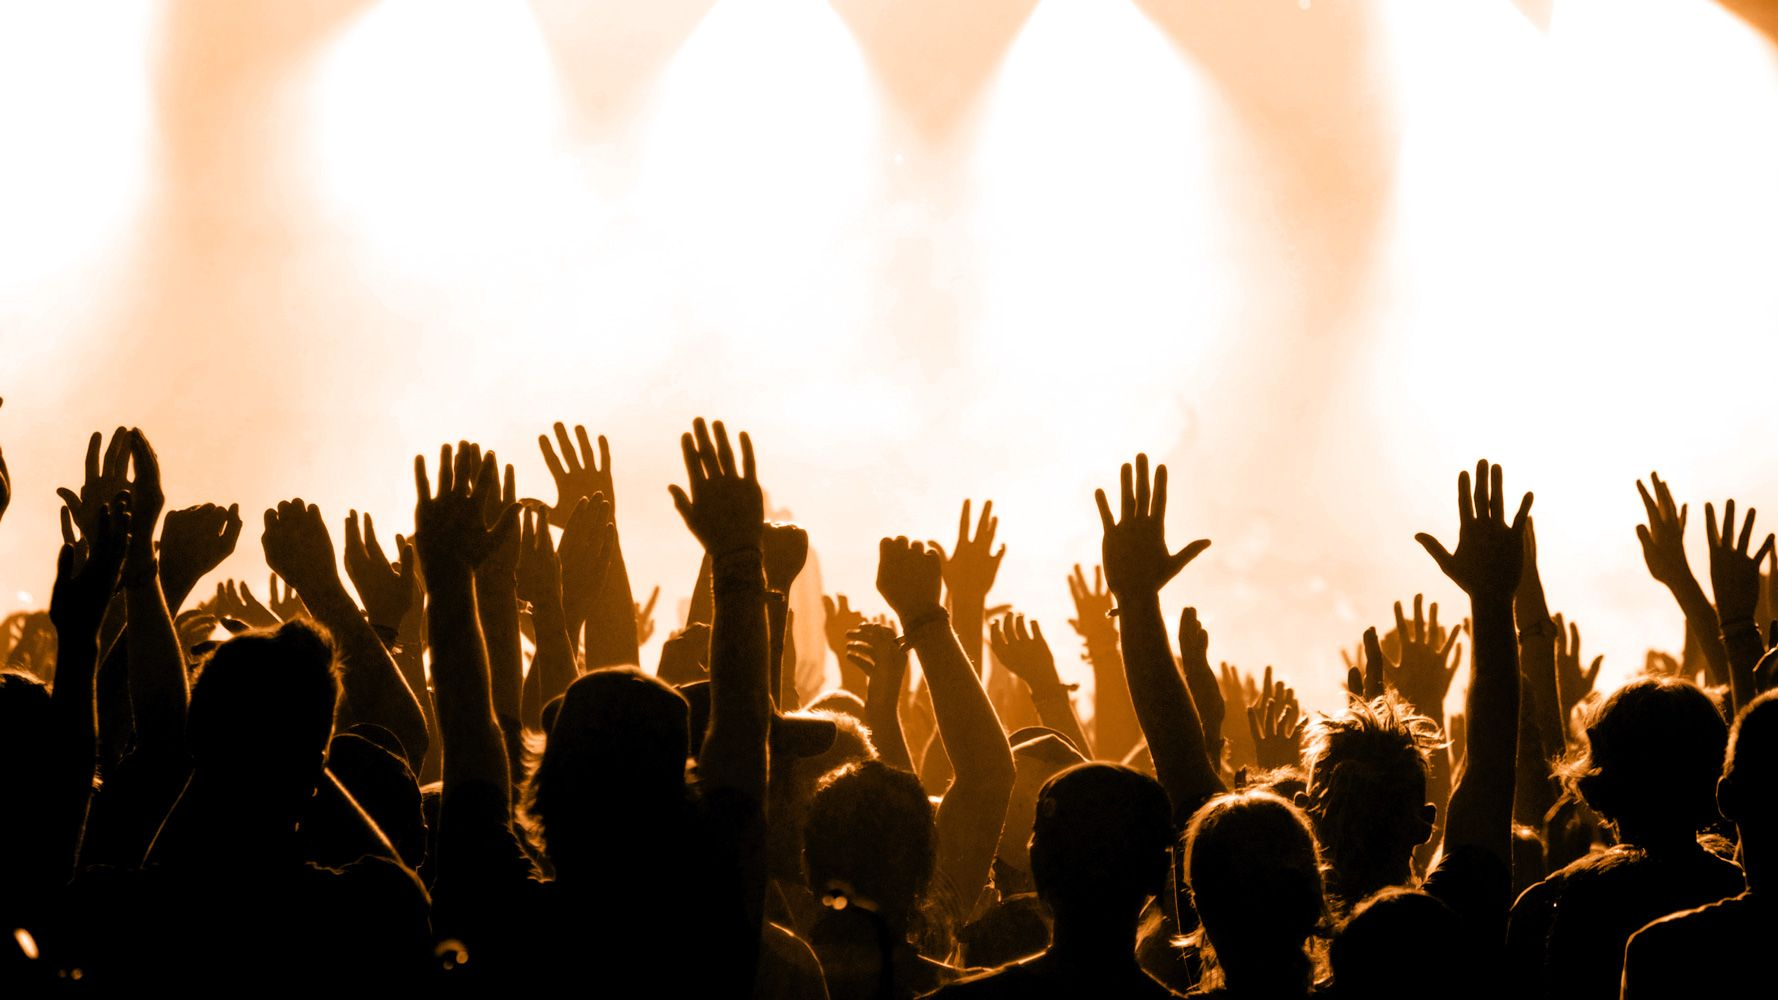 10 Worship Songs To Listen To In A Time Of Need | •Odyssey